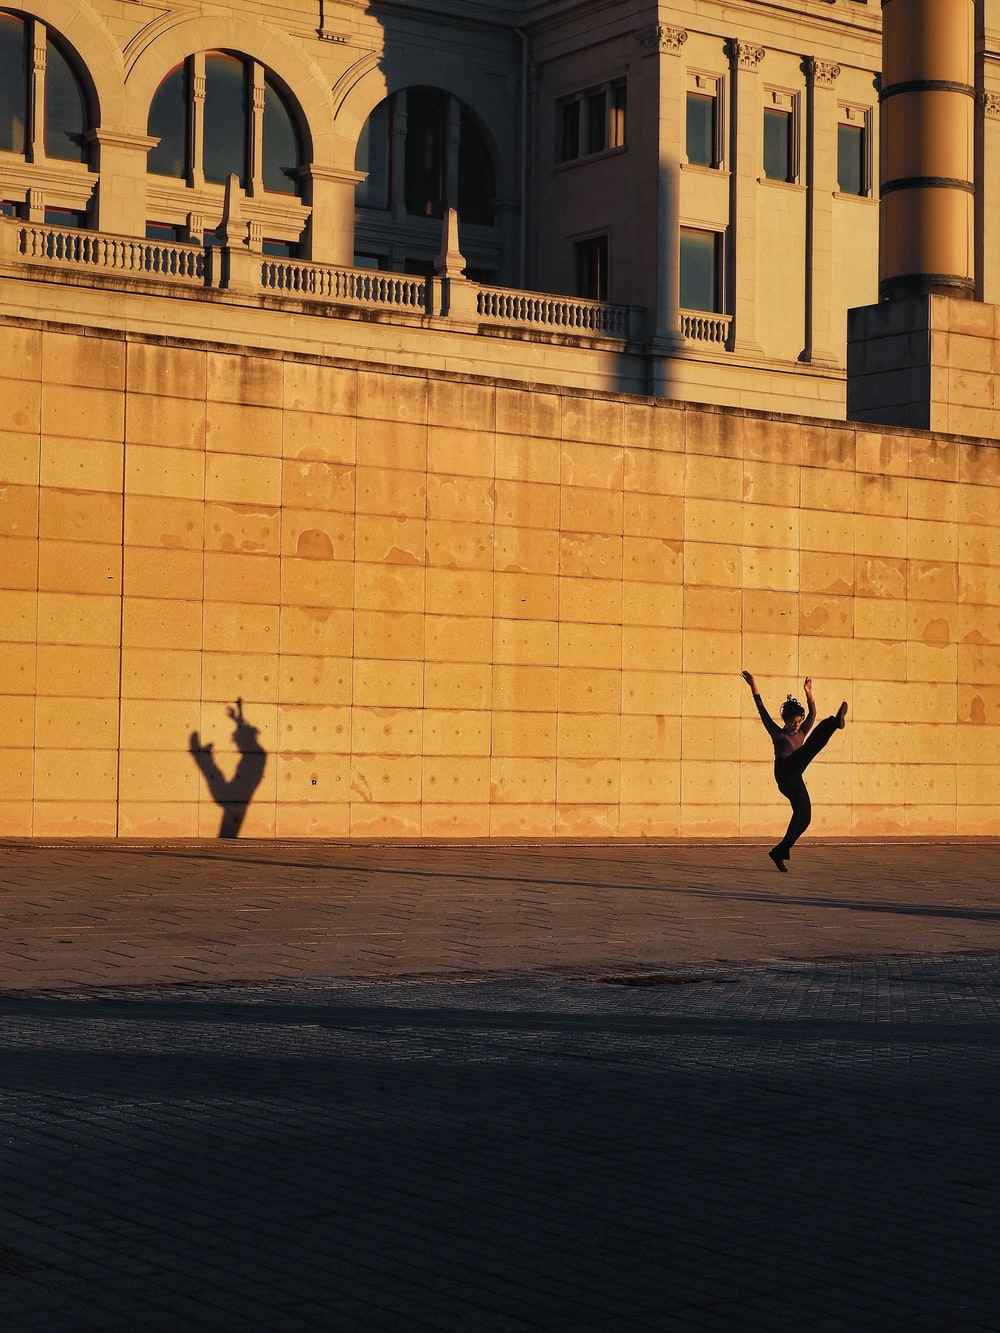 man in black jacket and pants jumping near beige concrete building during daytime